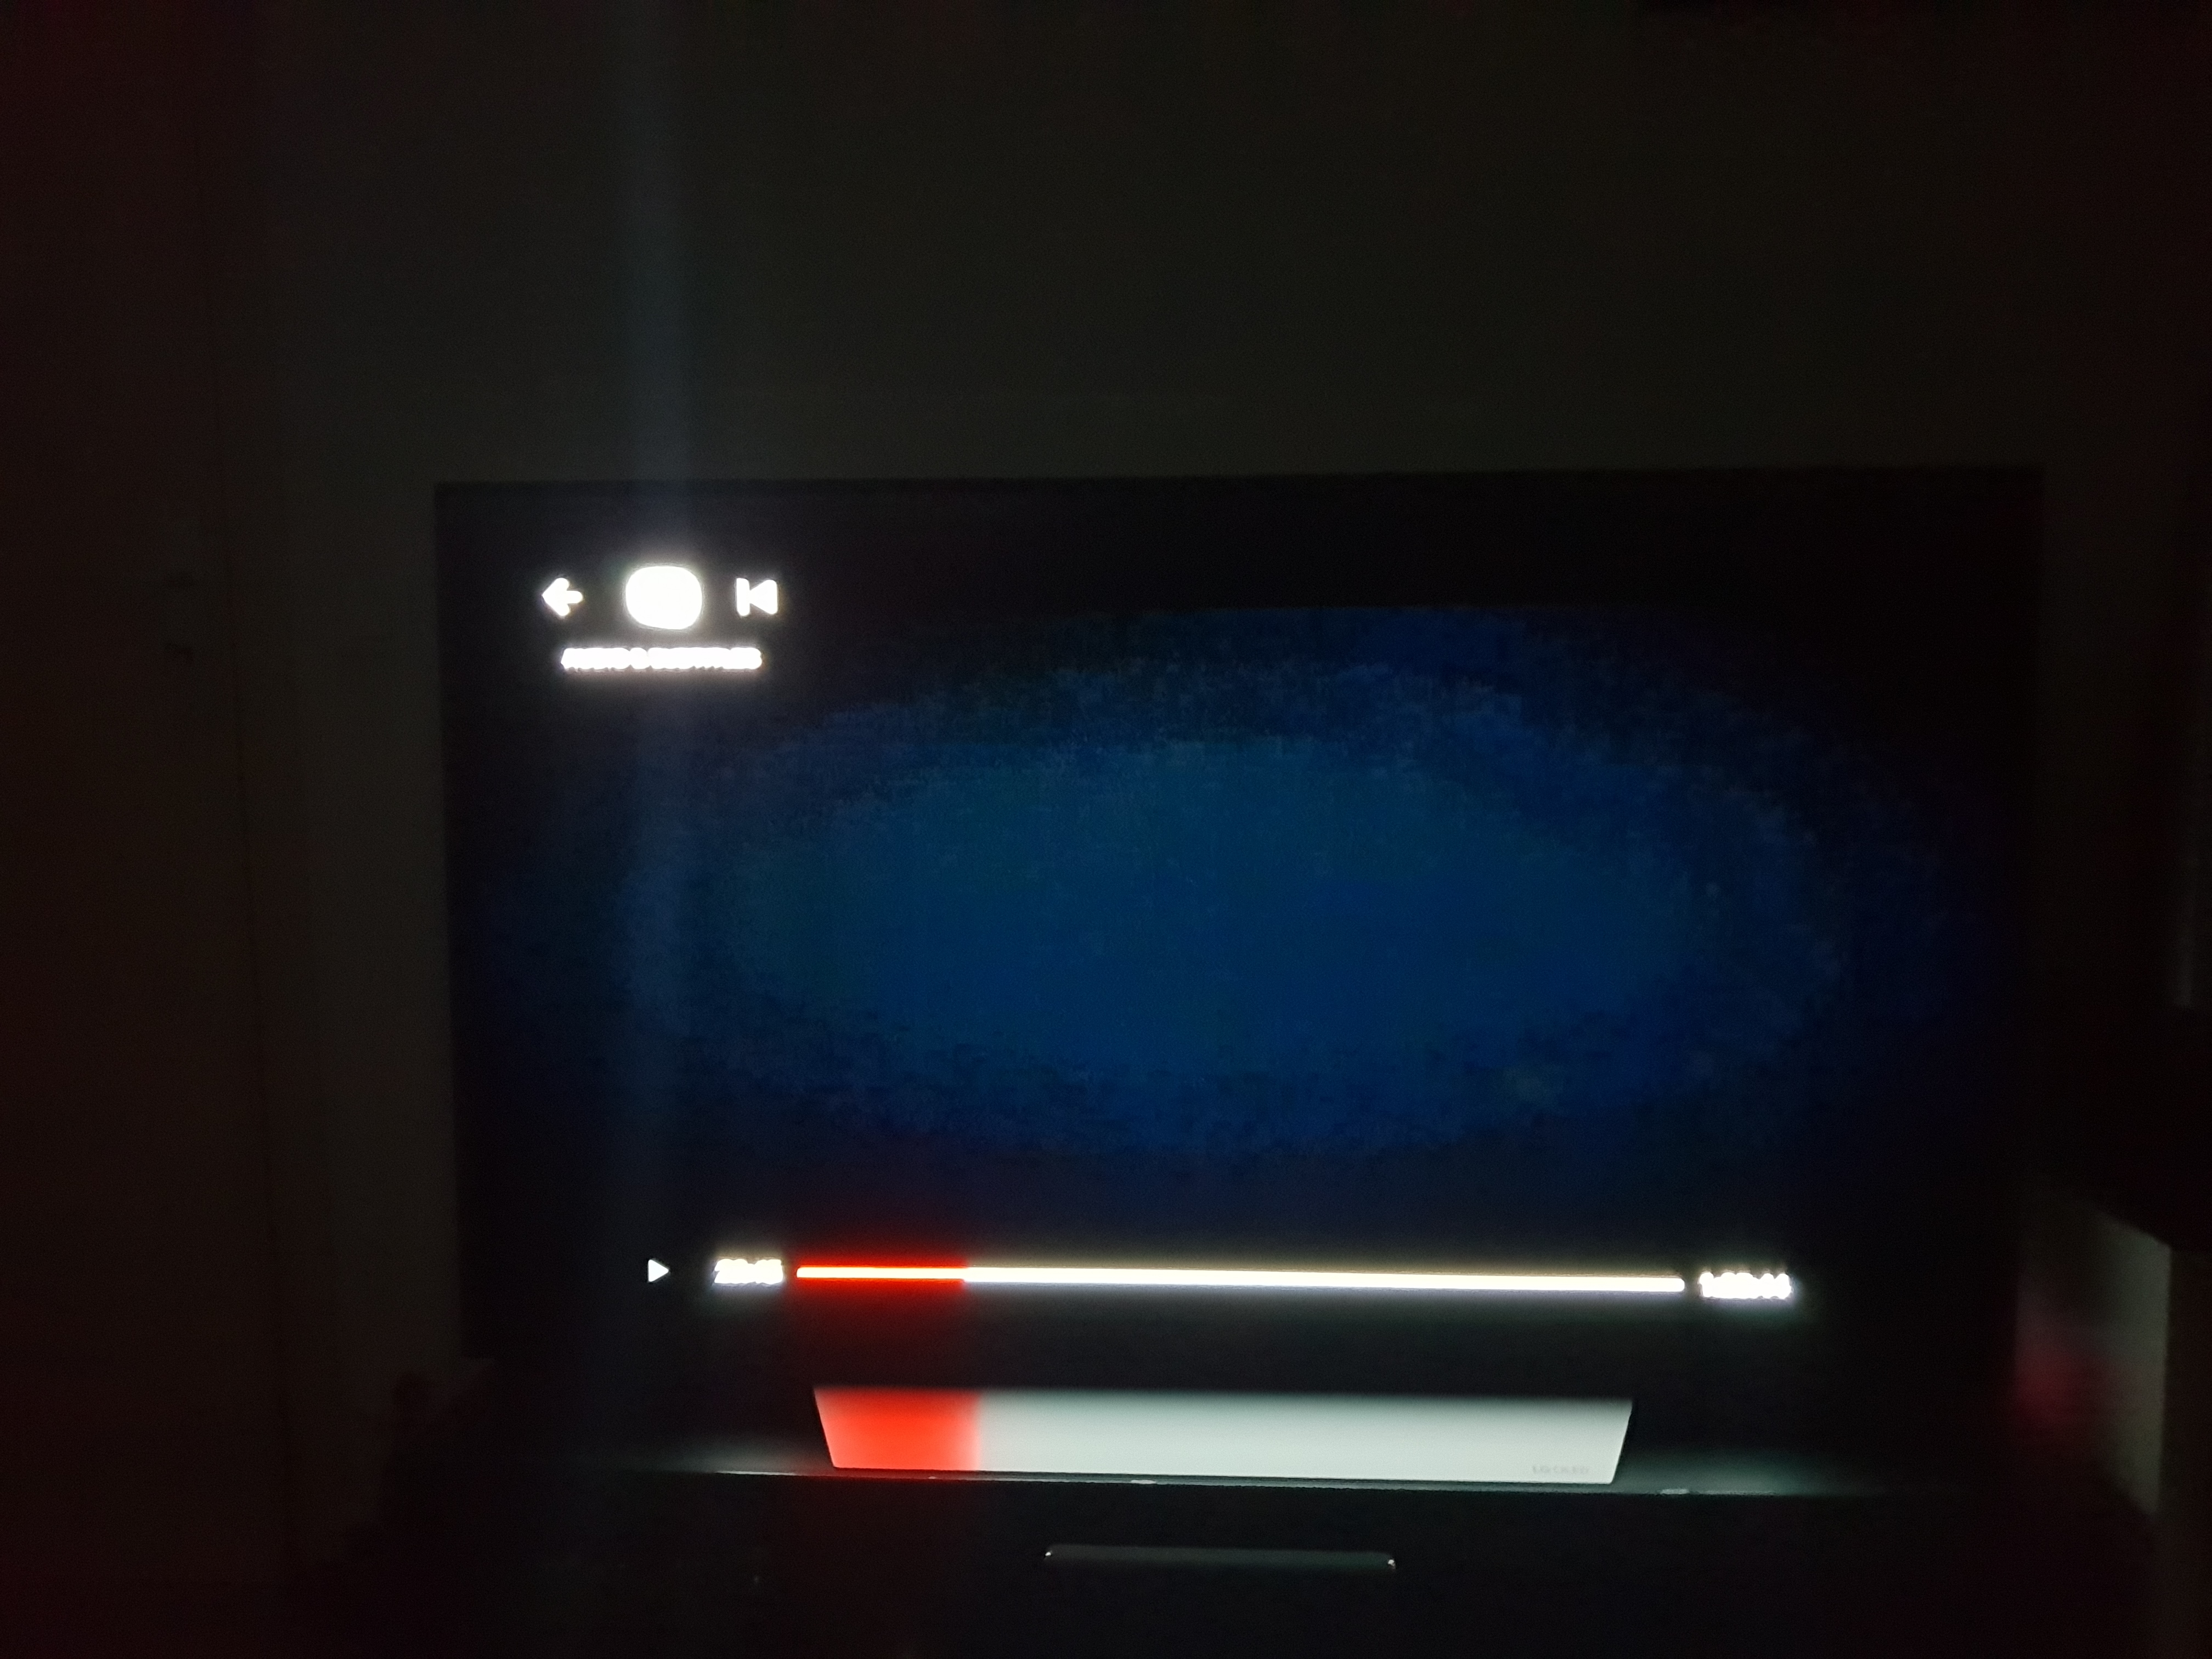 LG 2017 OLEDs - Calibrated Settings for Xbox One X / webOS (SDR/HDR